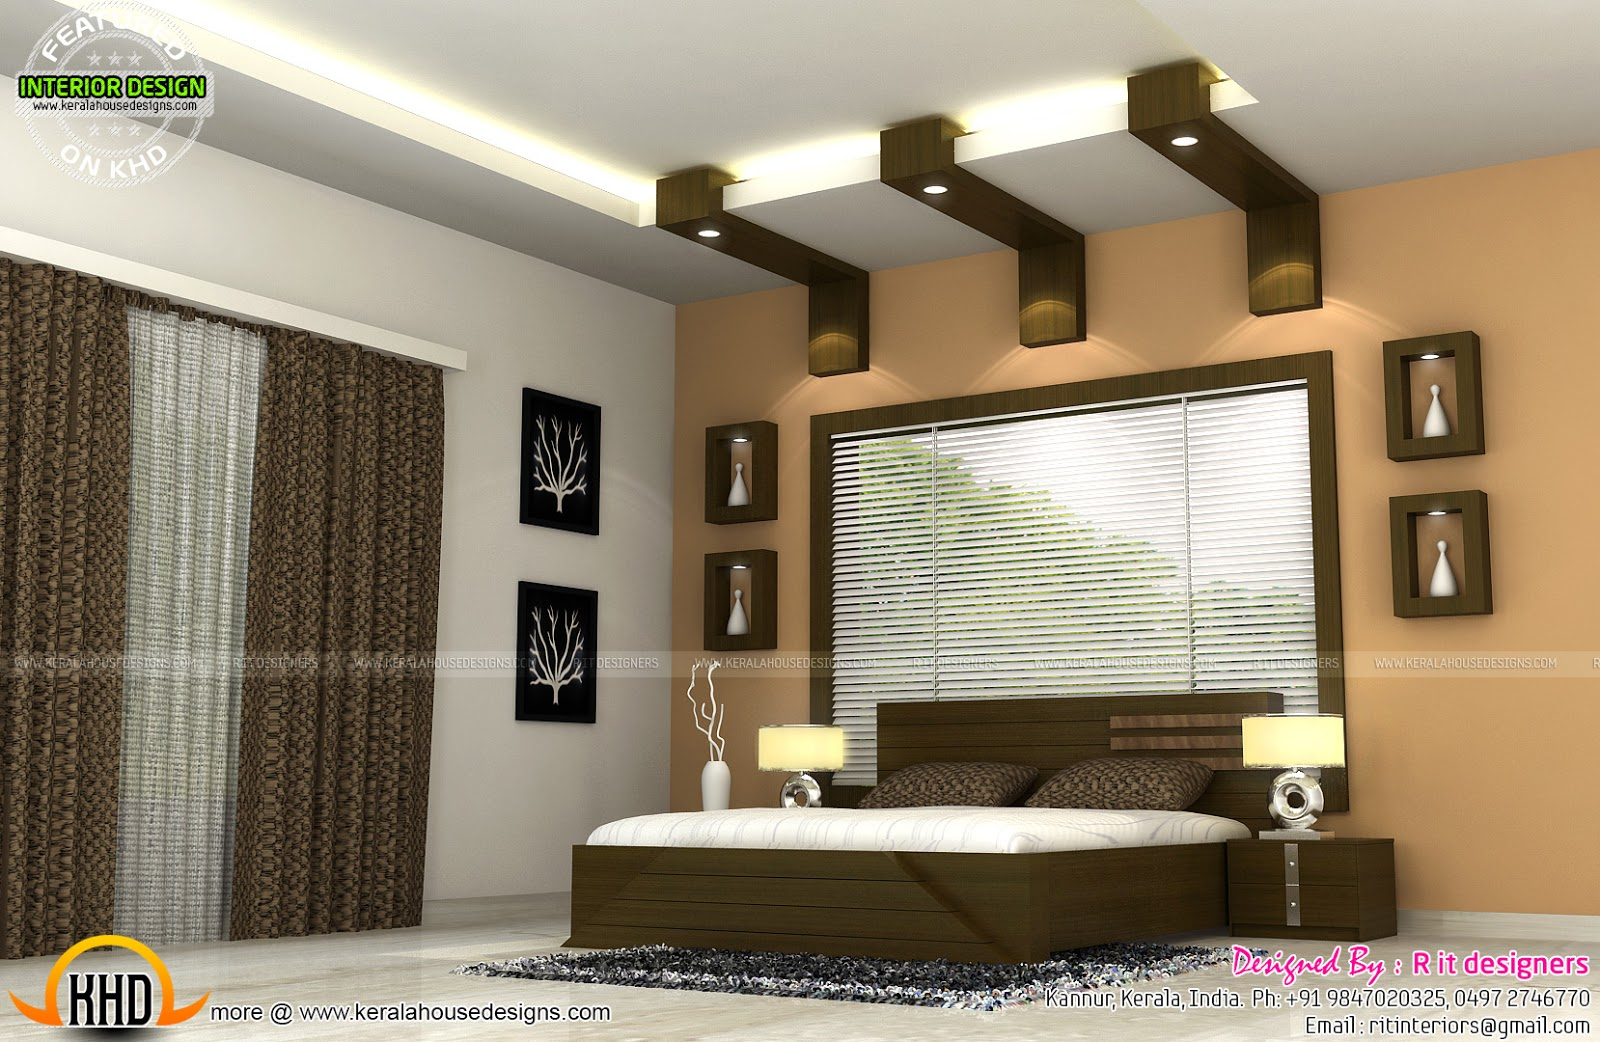 Interiors of bedrooms and kitchen kerala home design and floor plans - Interior decoration of homes ...